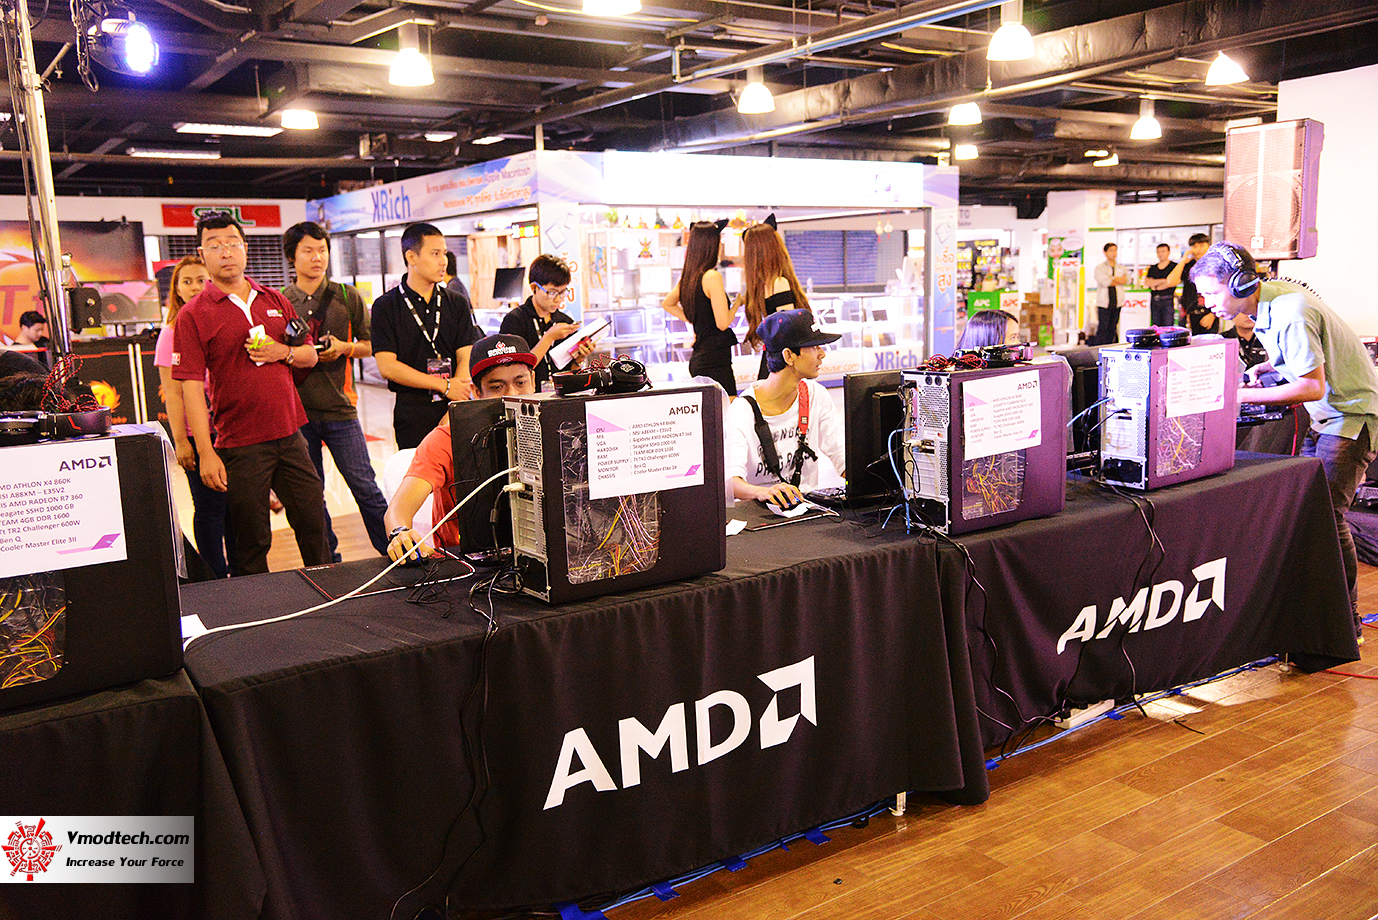 dsc 6628 AMD OMG! Party 2015 (AMD Overclock Modding Gaming Party 2015)